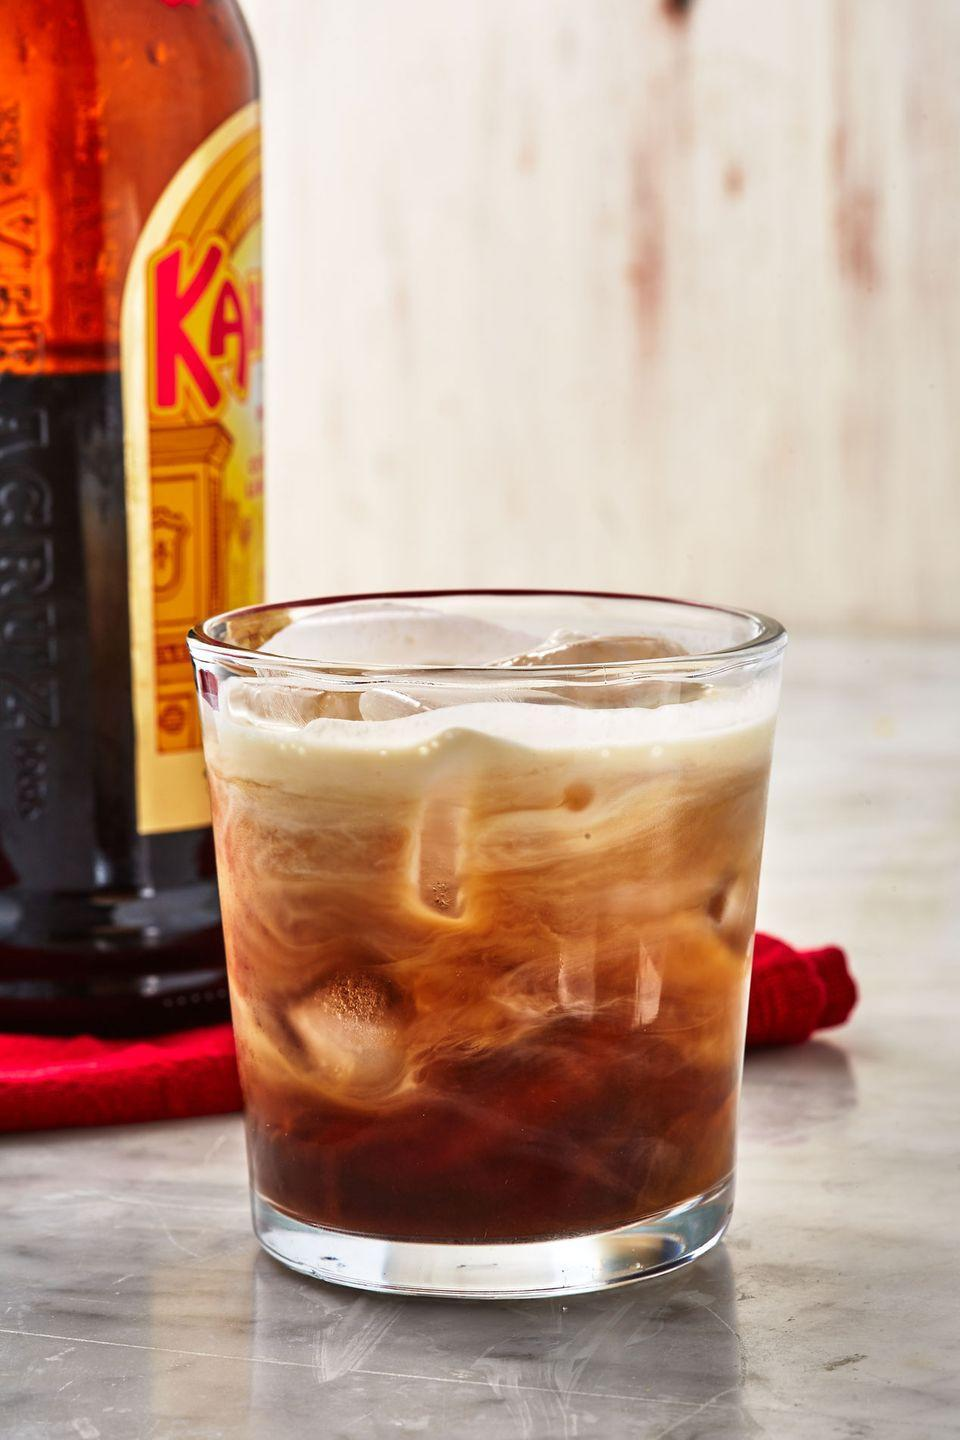 "<p>This three-ingredient cocktail is most definitely a crowd pleaser.</p><p>Get the recipe from <a href=""https://www.delish.com/cooking/recipe-ideas/a29091466/white-russian-cocktail-recipe/"" rel=""nofollow noopener"" target=""_blank"" data-ylk=""slk:Delish"" class=""link rapid-noclick-resp"">Delish</a>.</p>"